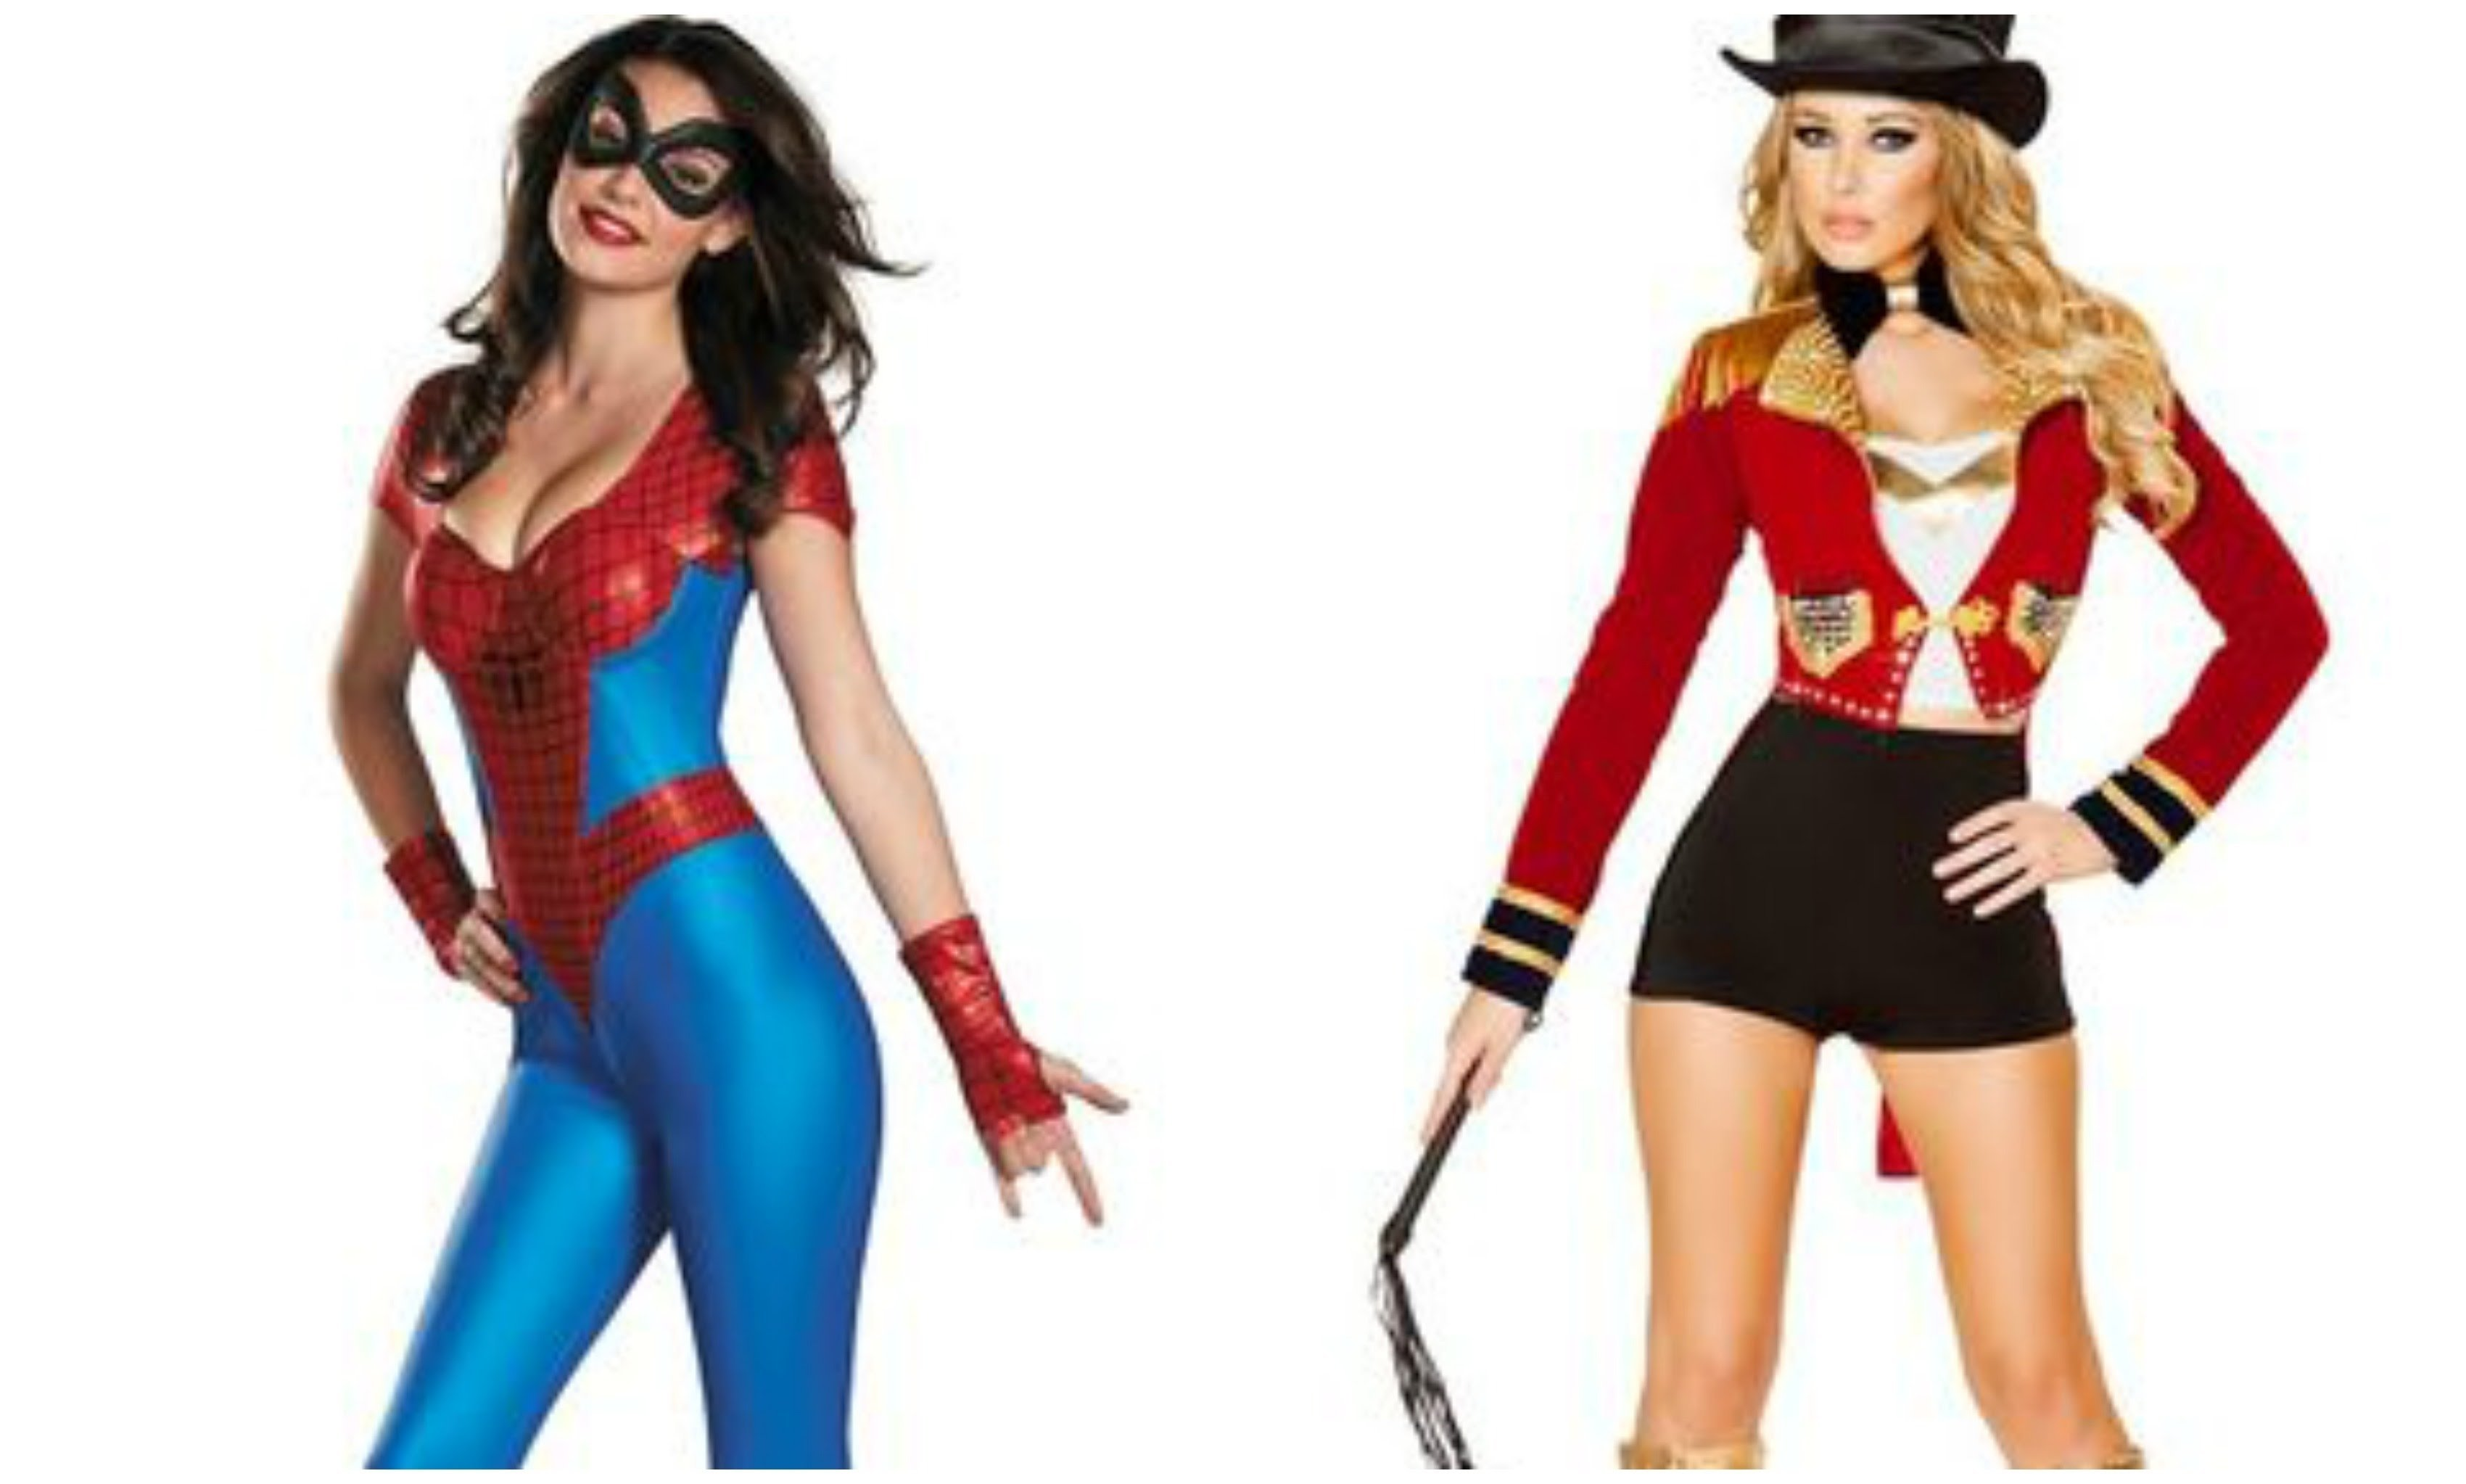 most recommended cool halloween costume ideas for women costume ideas for halloween costumes jpg 3400x2046 cool